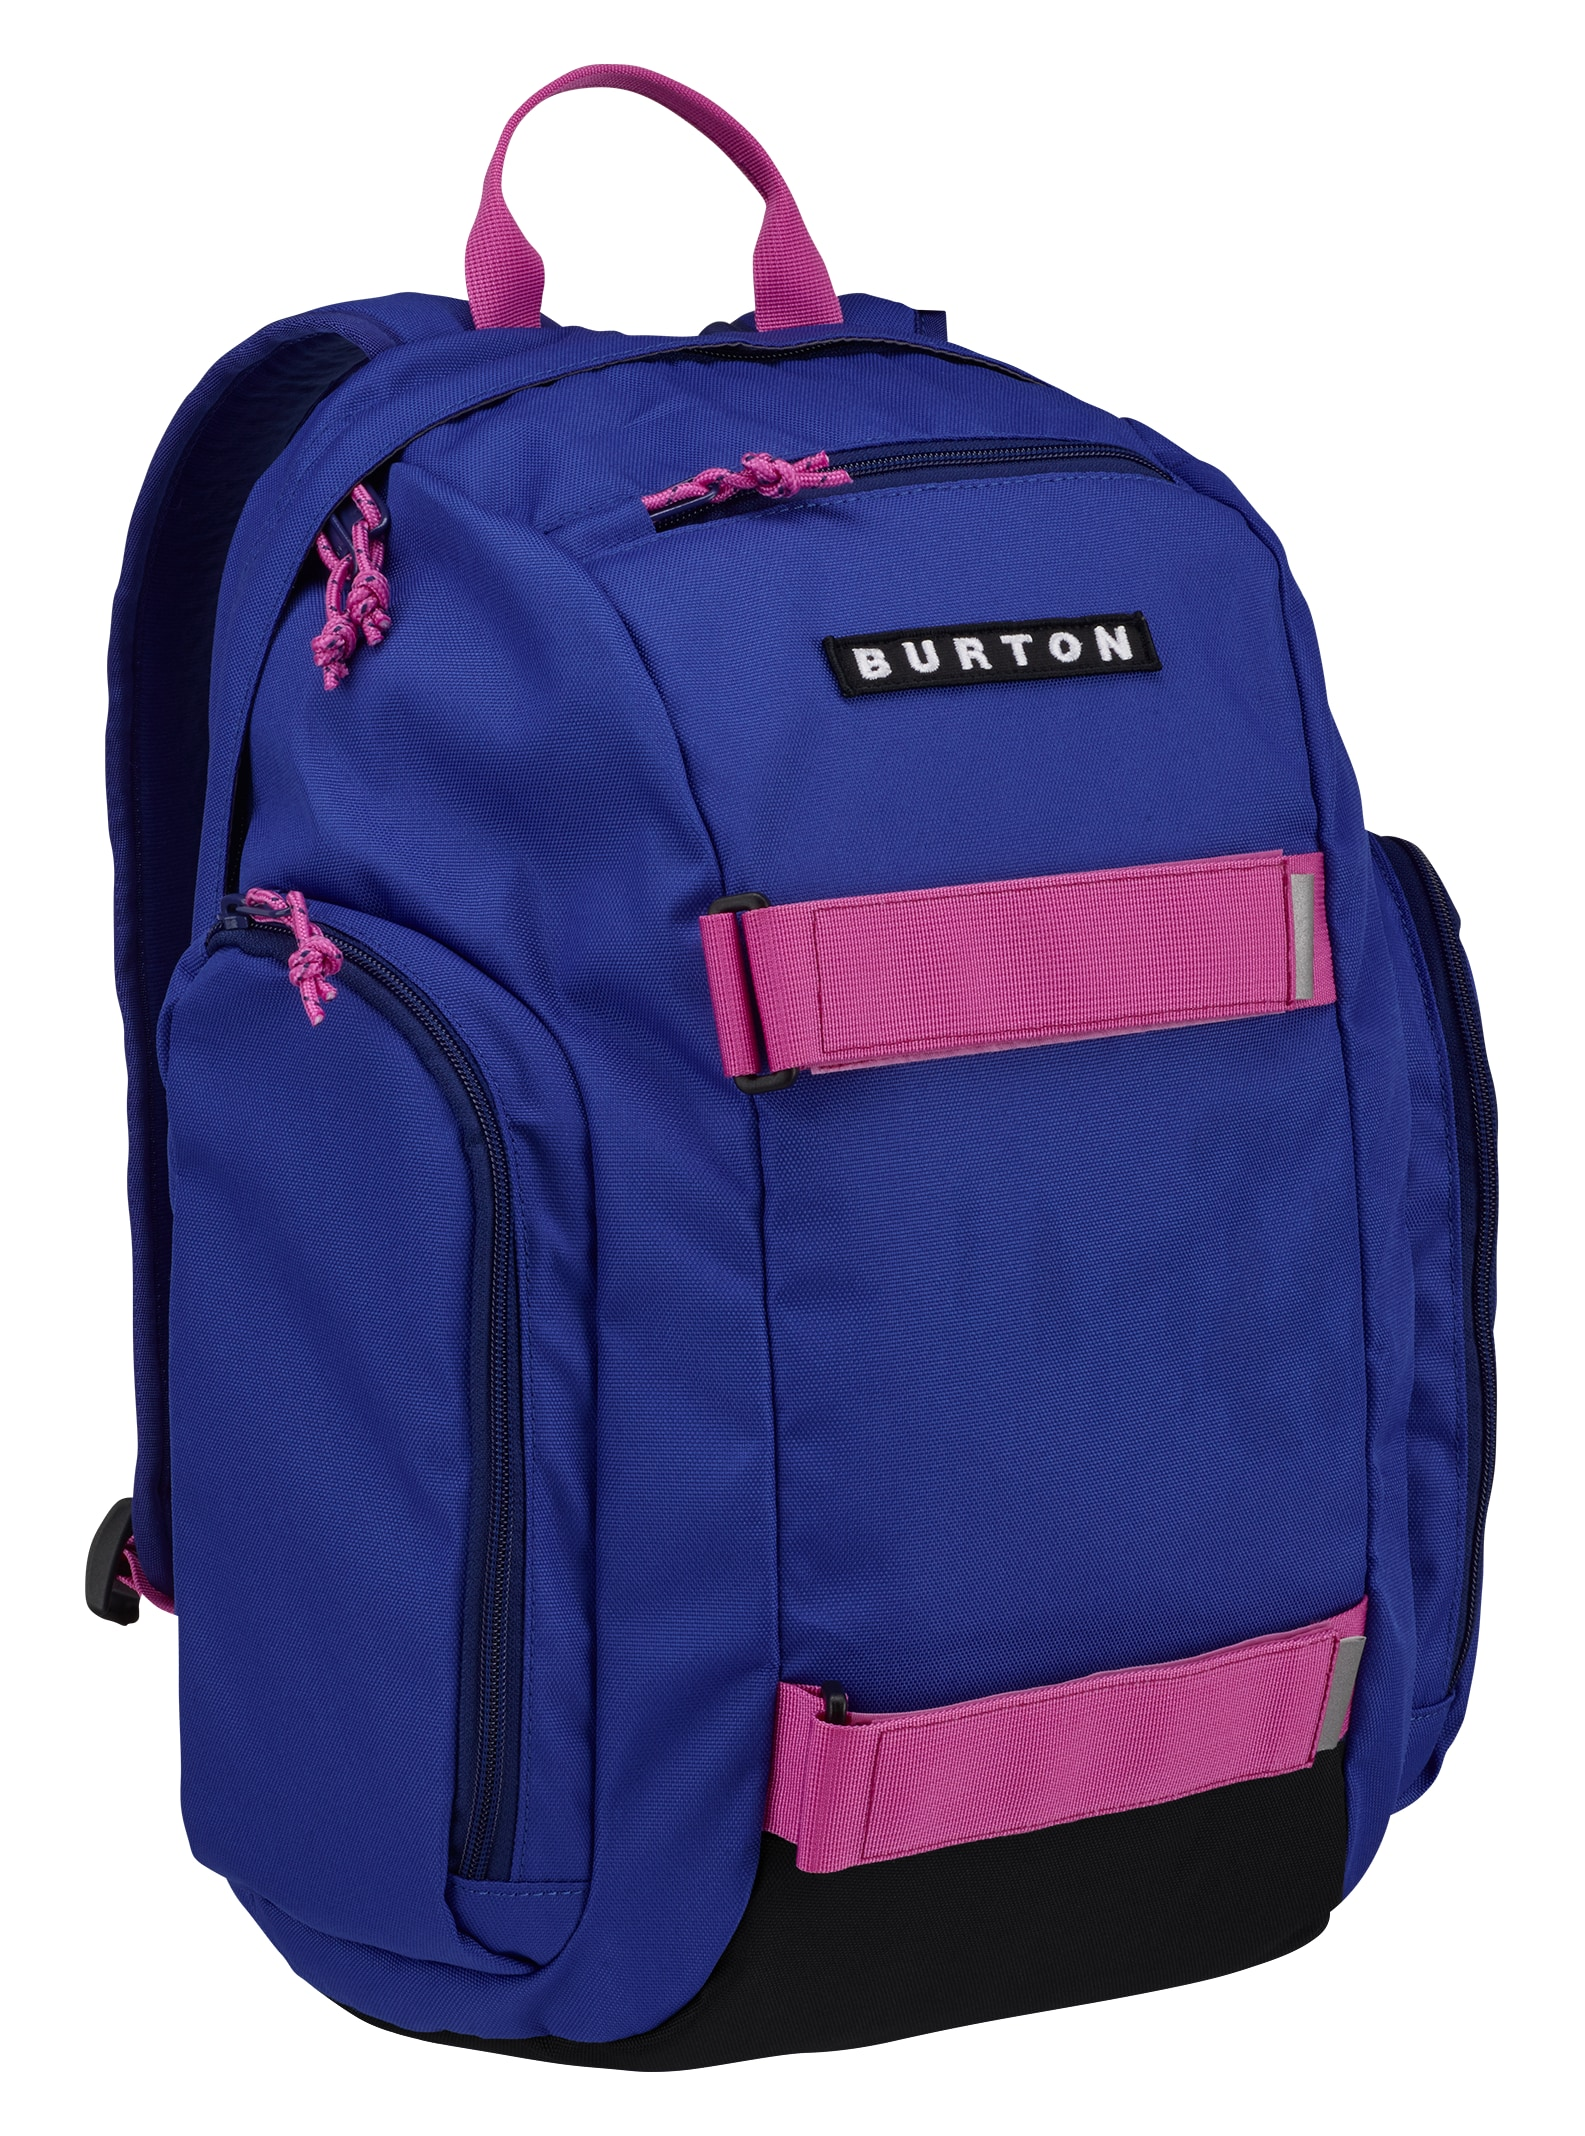 Burton Kids' Metalhead Backpack shown in Sorcerer Spell